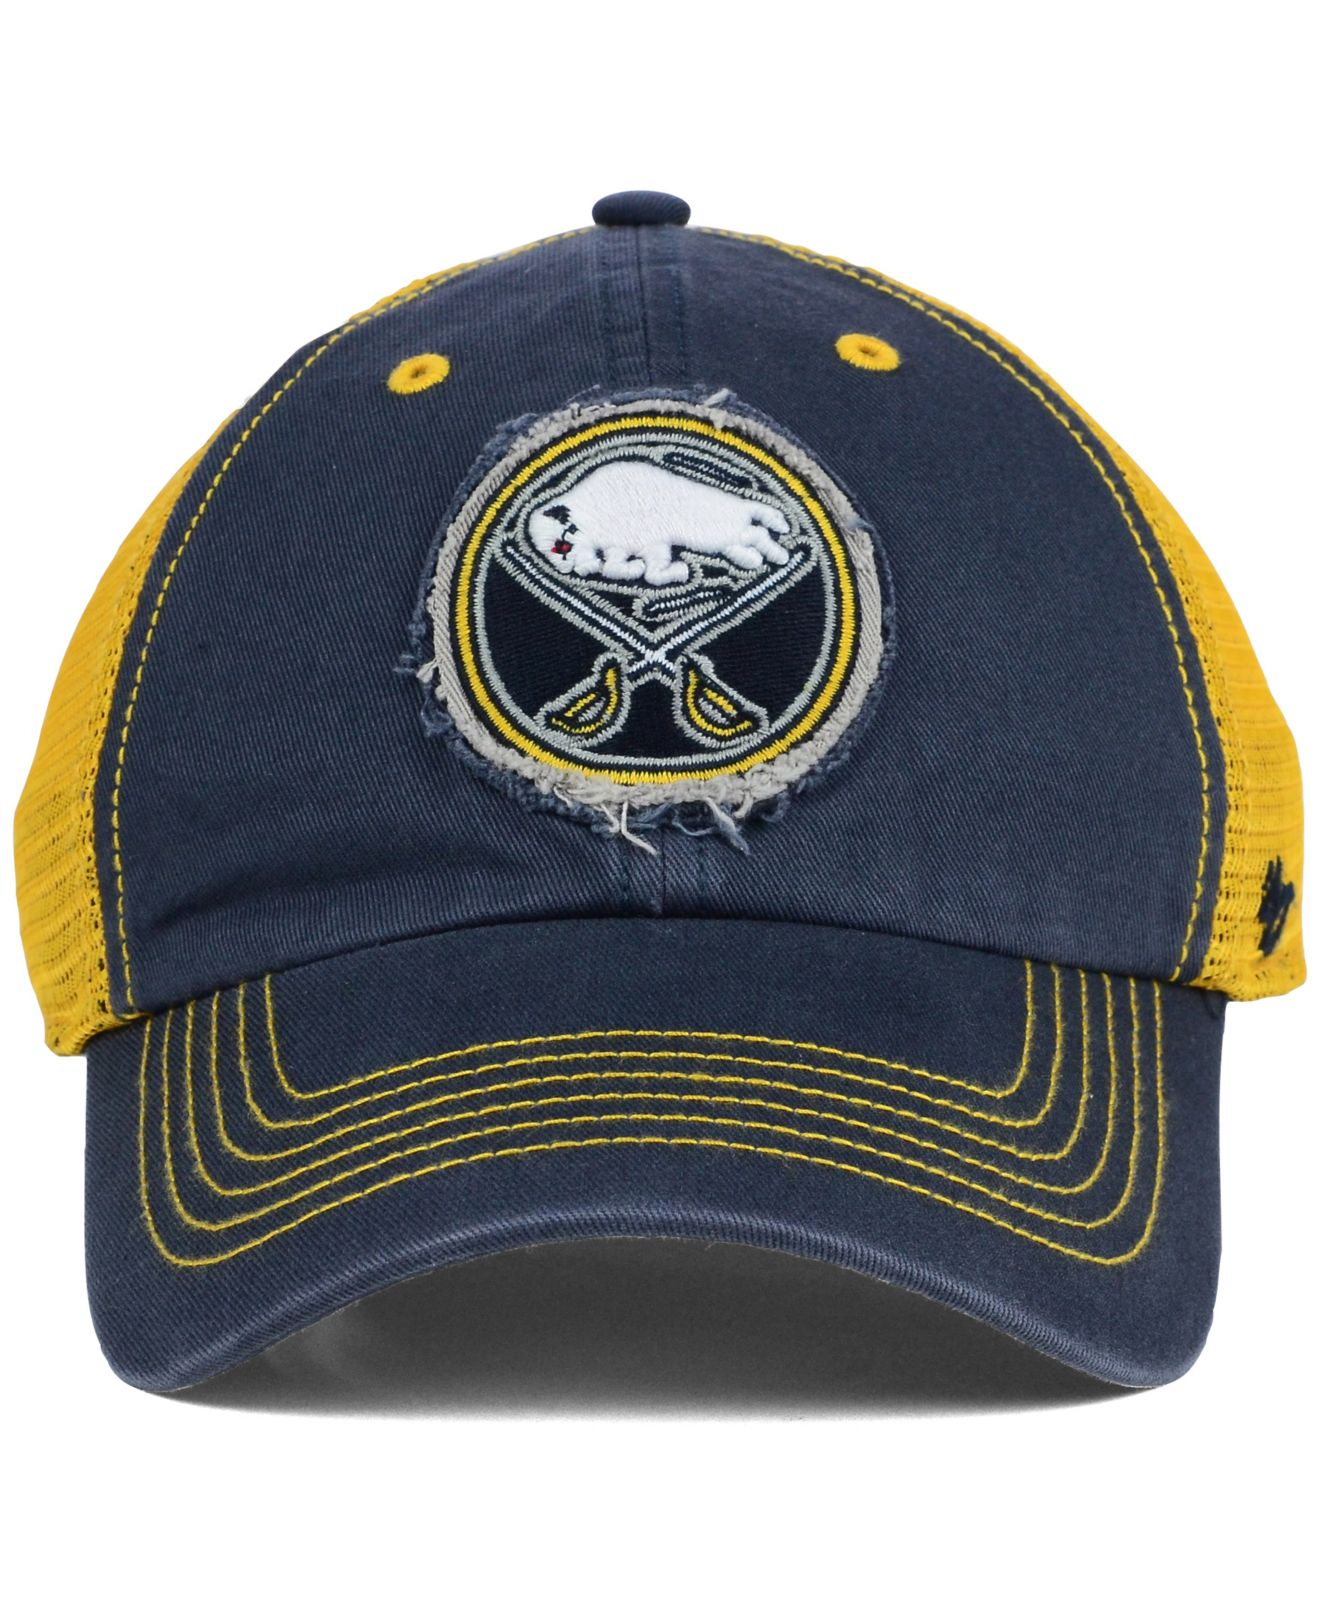 cheaper fdb0f 2db8d Lyst - 47 Brand Buffalo Sabres Taylor Closer Cap in Blue